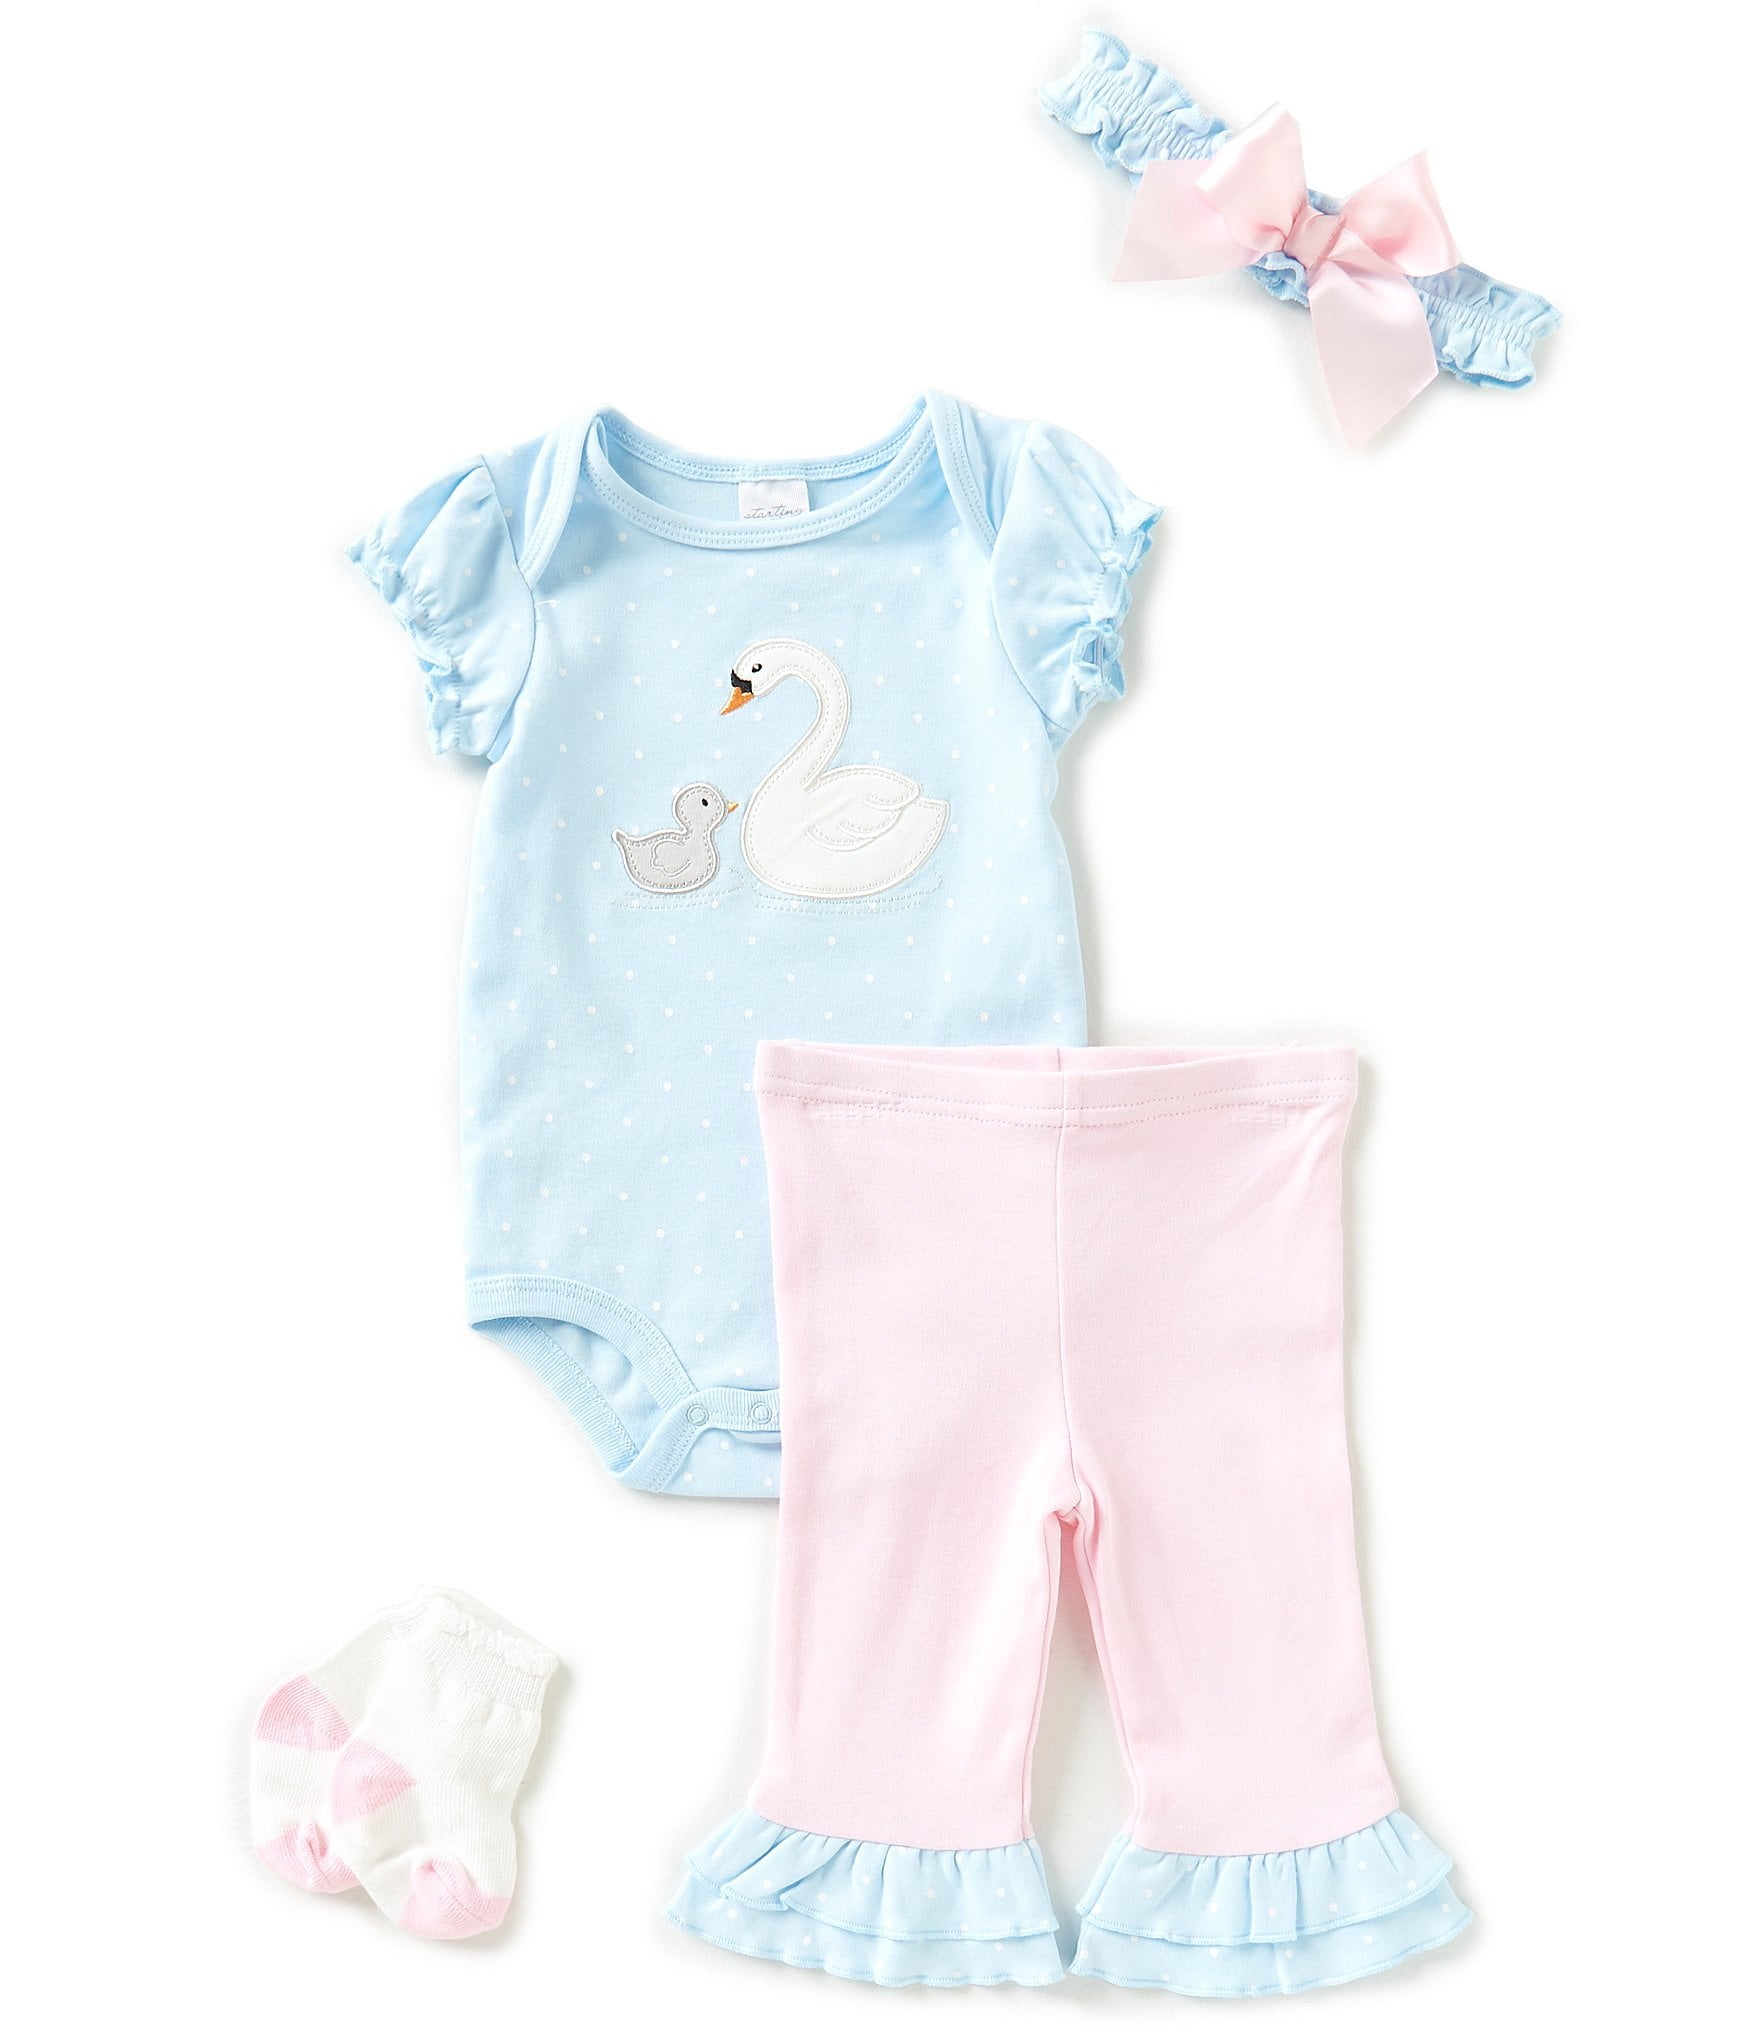 White Starting Out Kids & Baby Clothing & Accessories